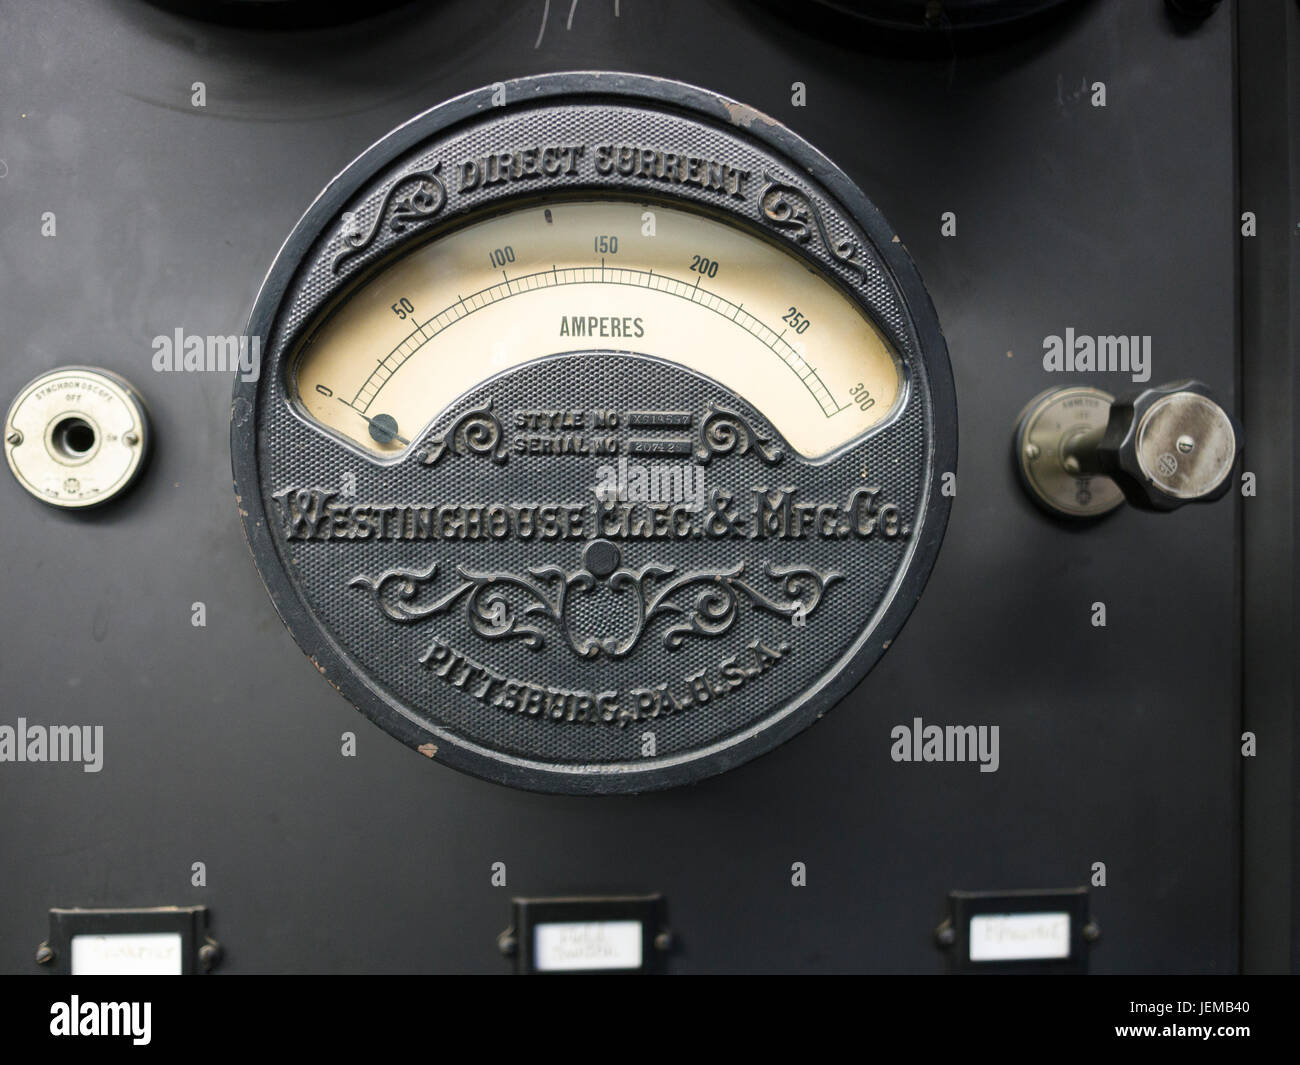 Ammeter Stock Photos Images Alamy Current In A Series Circuit The Reads 01a When Switch Is Old Westinghouse Dc An Direct Measures Amps